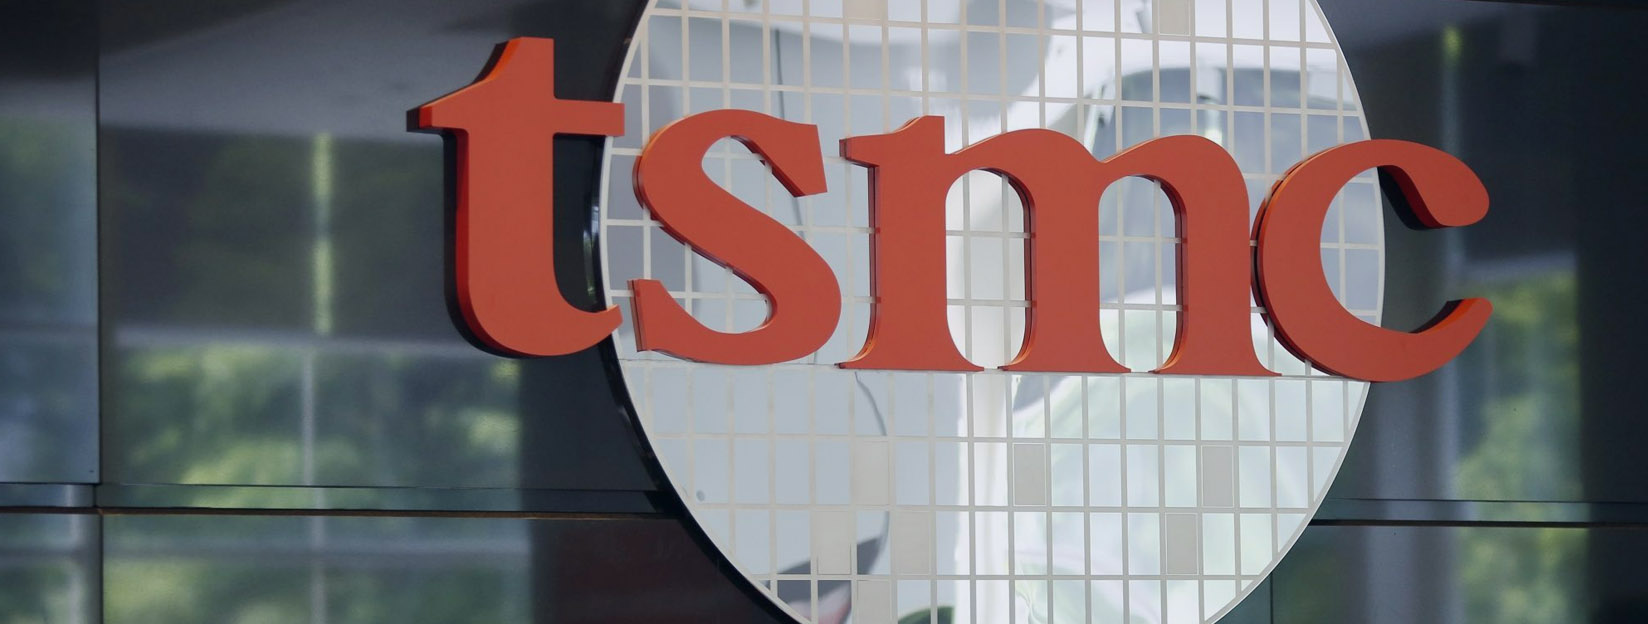 TSMC Forecasts 17% Sales Growth in 2020